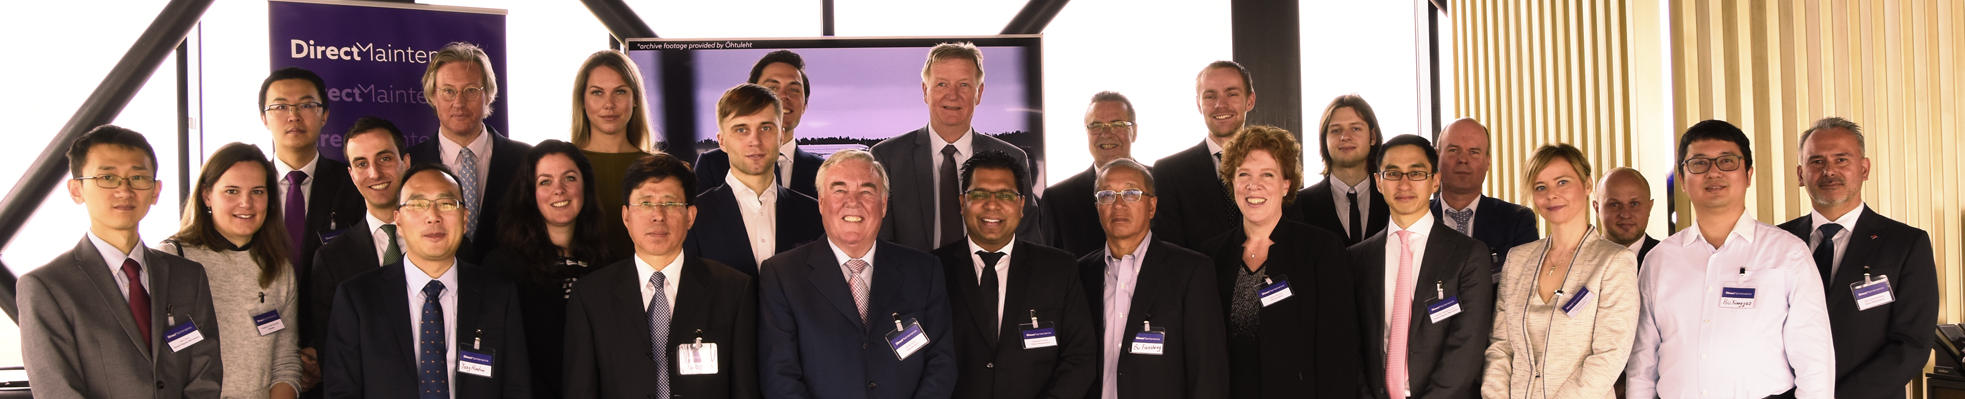 Magnetic MRO welcomes Direct Maintenance to the group with a ceremony in Amsterdam